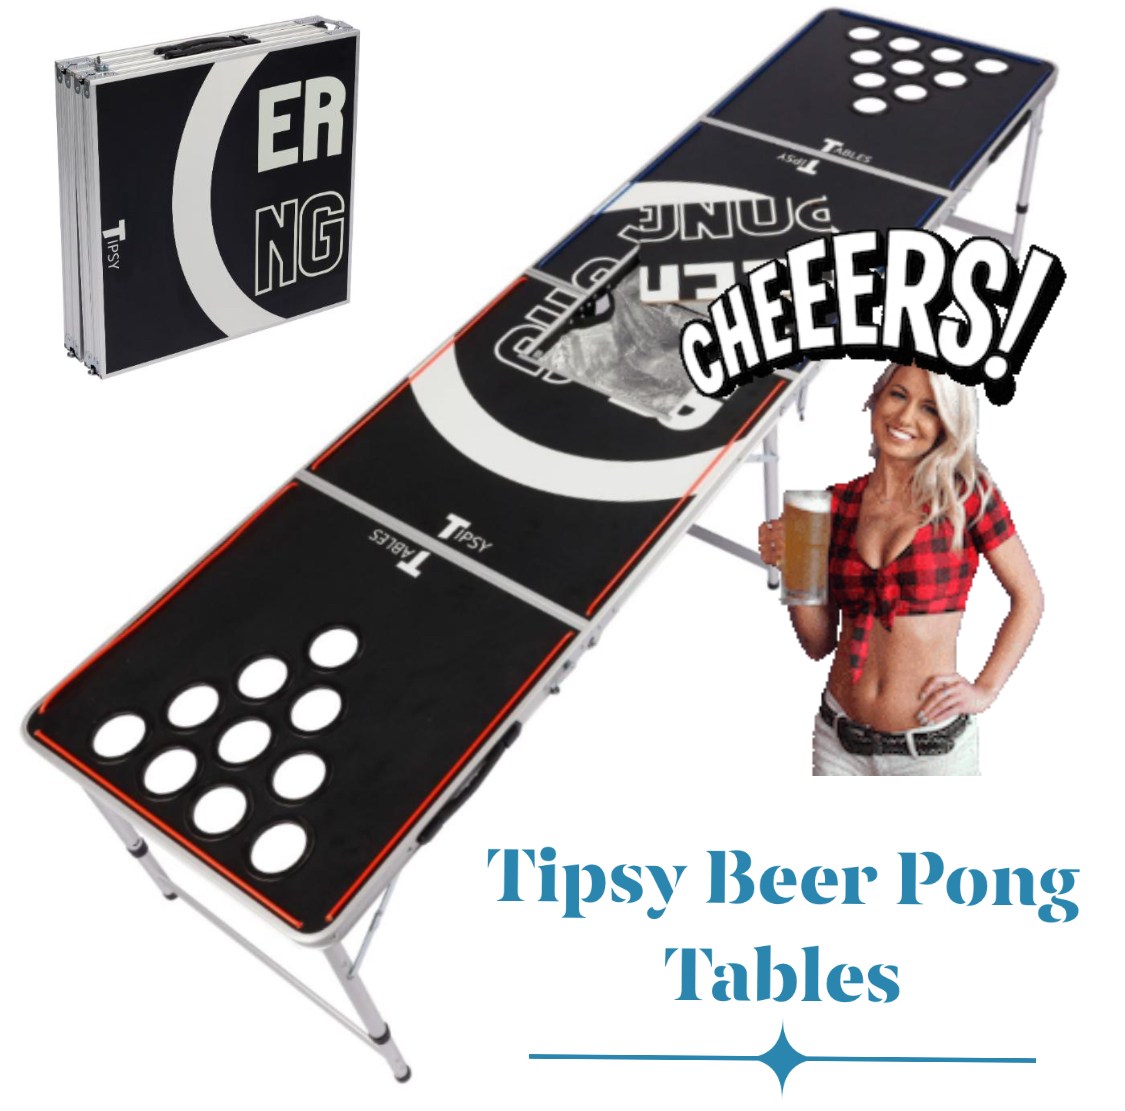 Tipsy Beer Pong Table